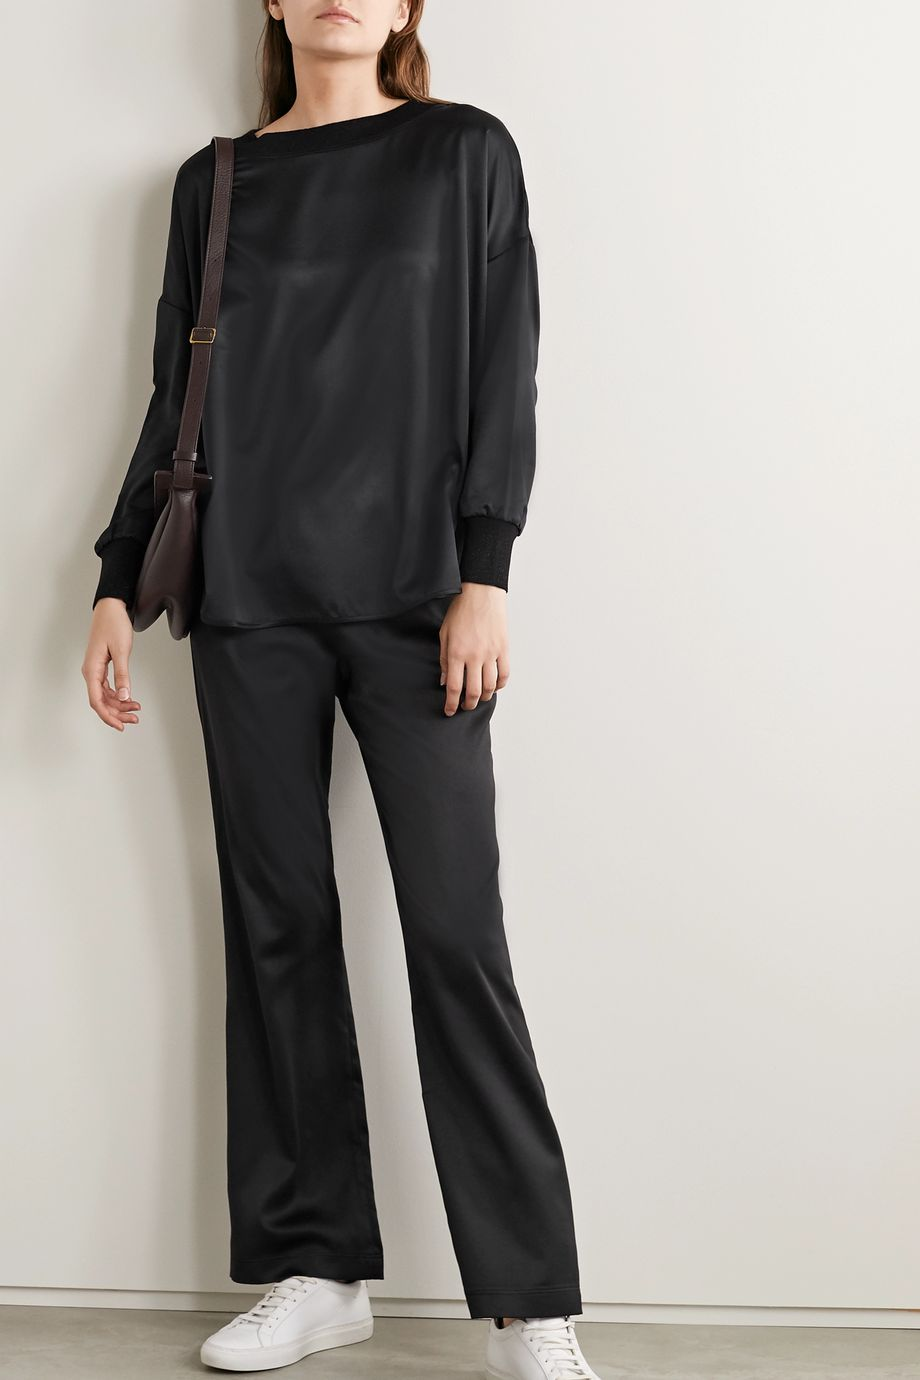 Max Mara Leisure Canada stretch jersey-trimmed satin top